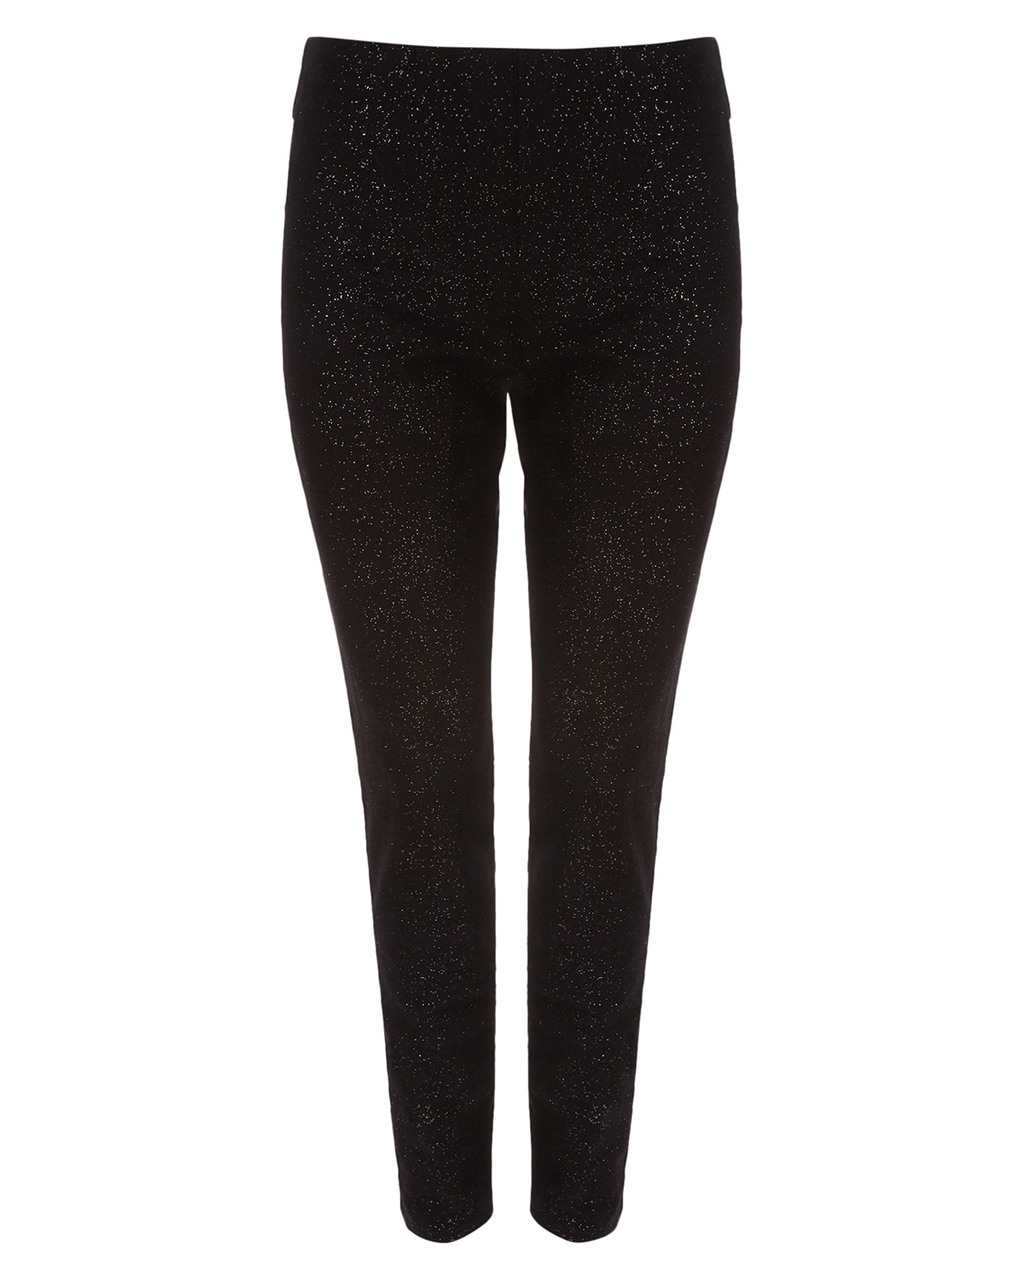 Amina Sparkle Jegging - length: standard; pattern: plain; style: jeggings; waist: mid/regular rise; predominant colour: black; occasions: casual, creative work; fibres: cotton - stretch; texture group: denim; pattern type: fabric; season: a/w 2015